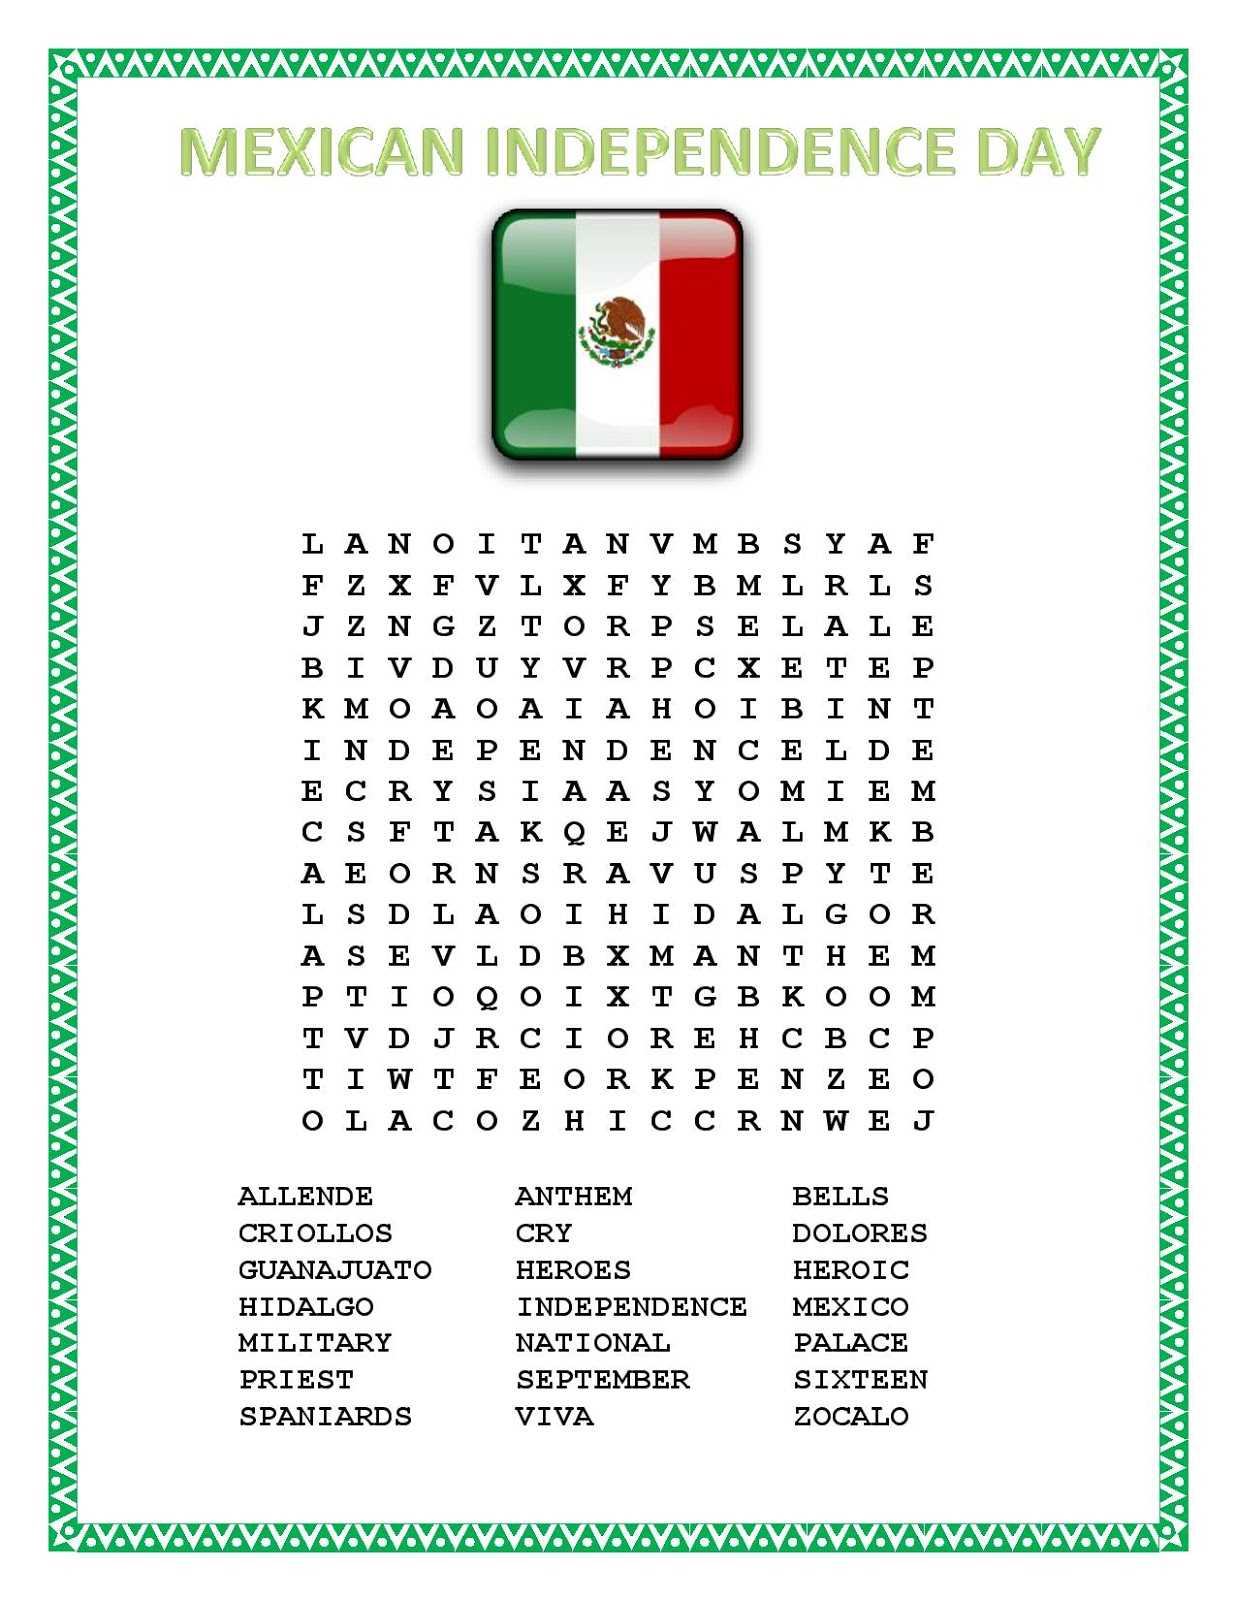 mexican independence day essay Find and save ideas about speech on independence day on pinterest independence day essay in hindi learn about the history behind mexican independence day.